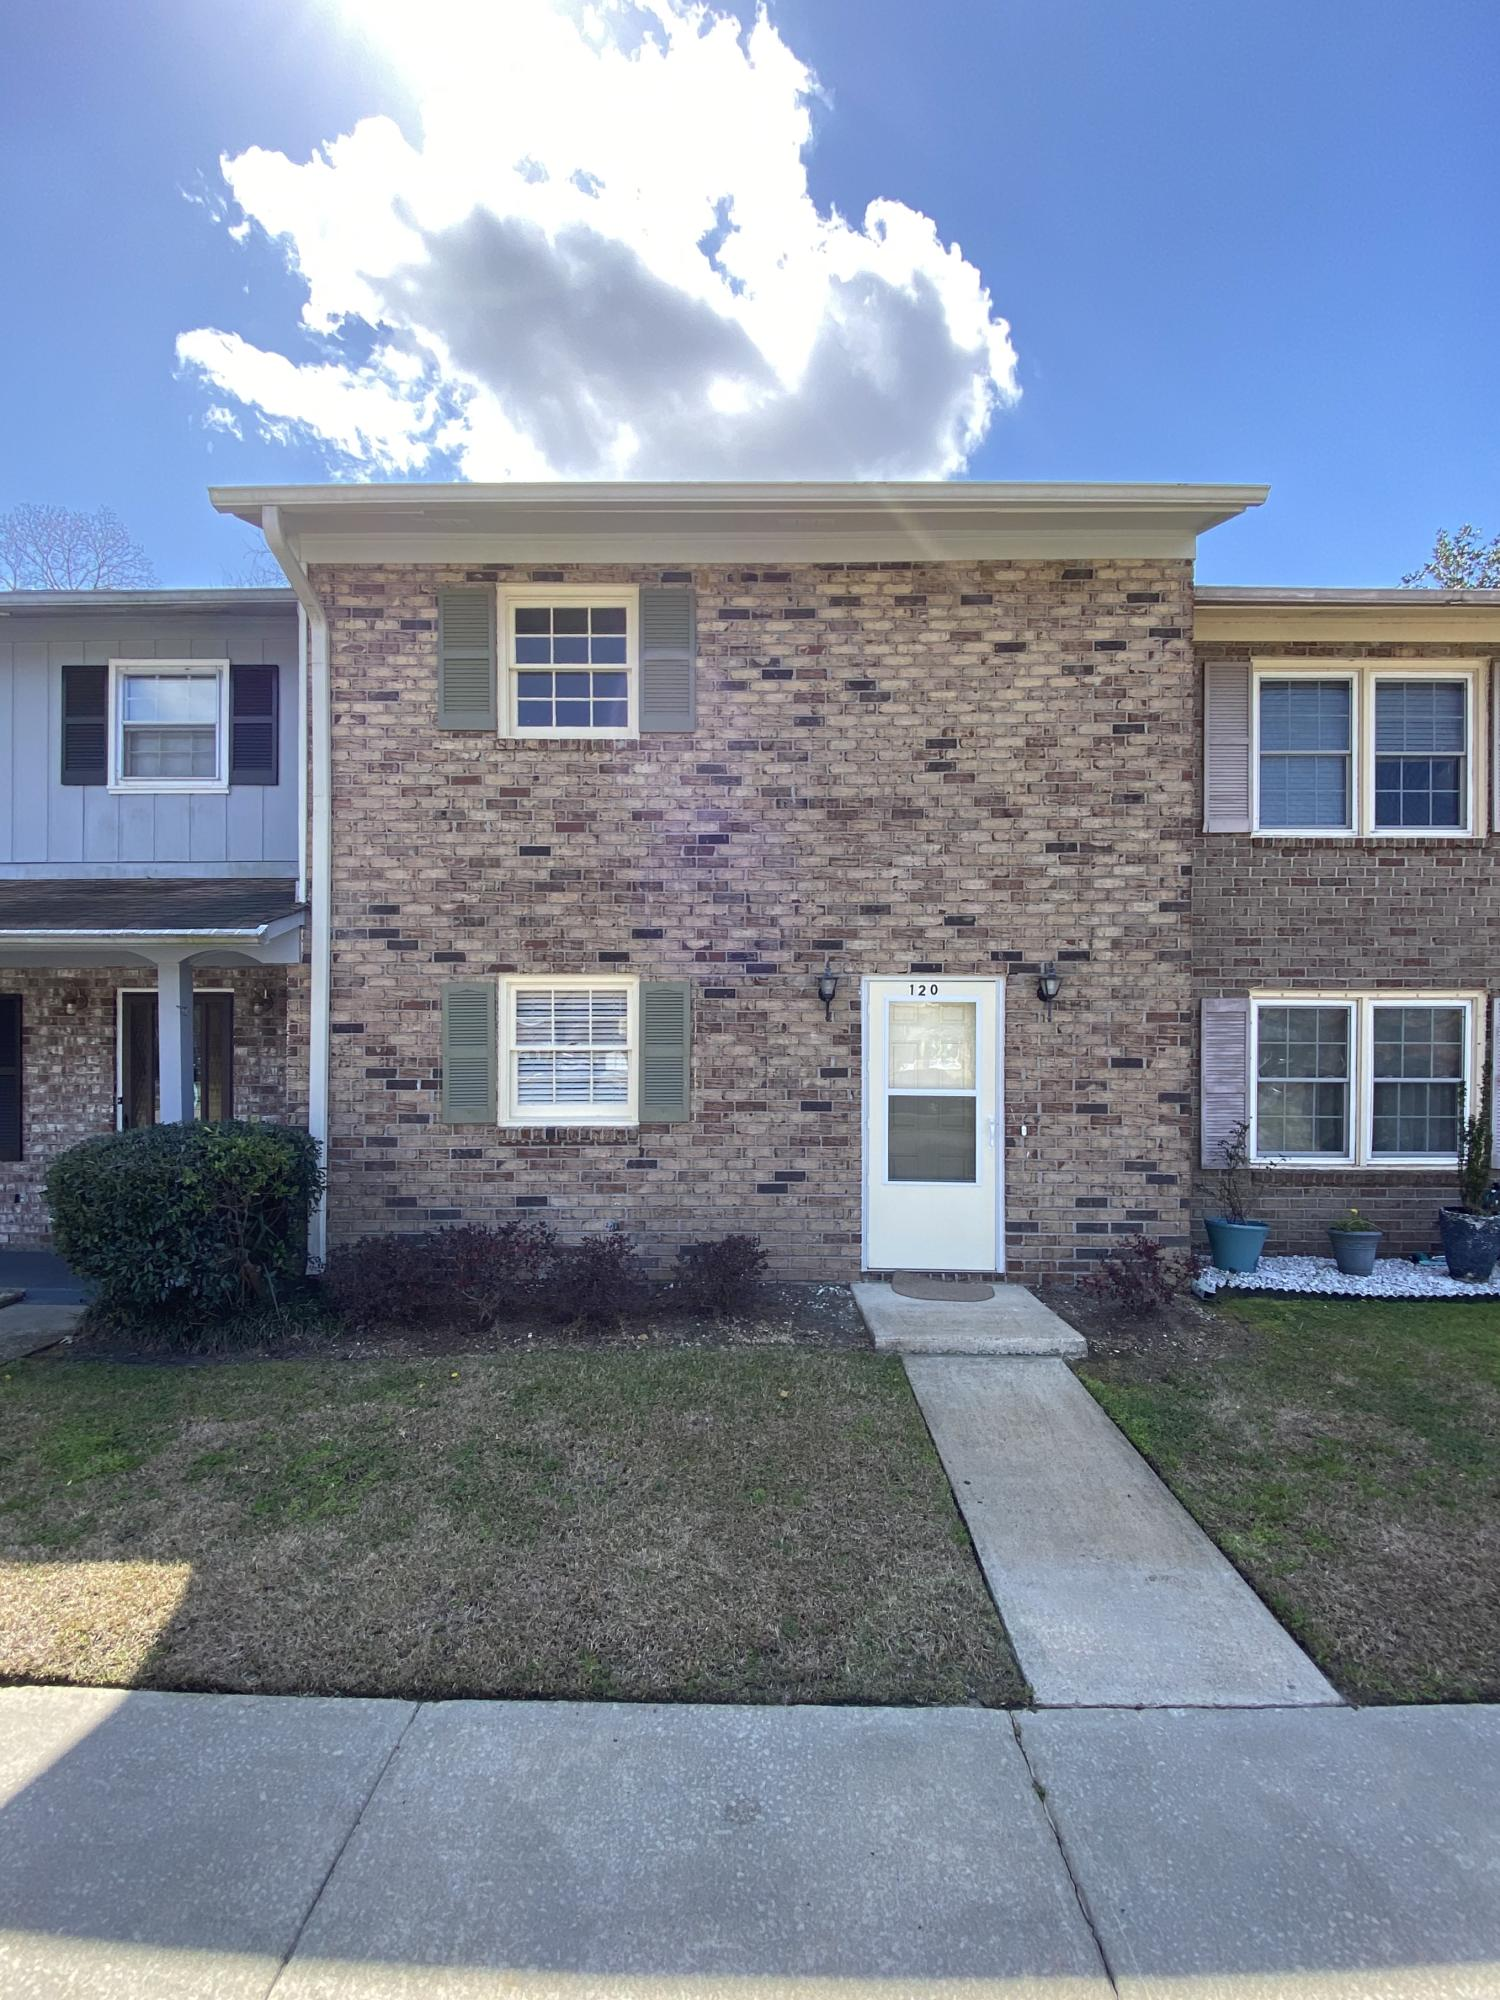 Foxborough Town Houses Homes For Sale - 120 Brush, Goose Creek, SC - 32